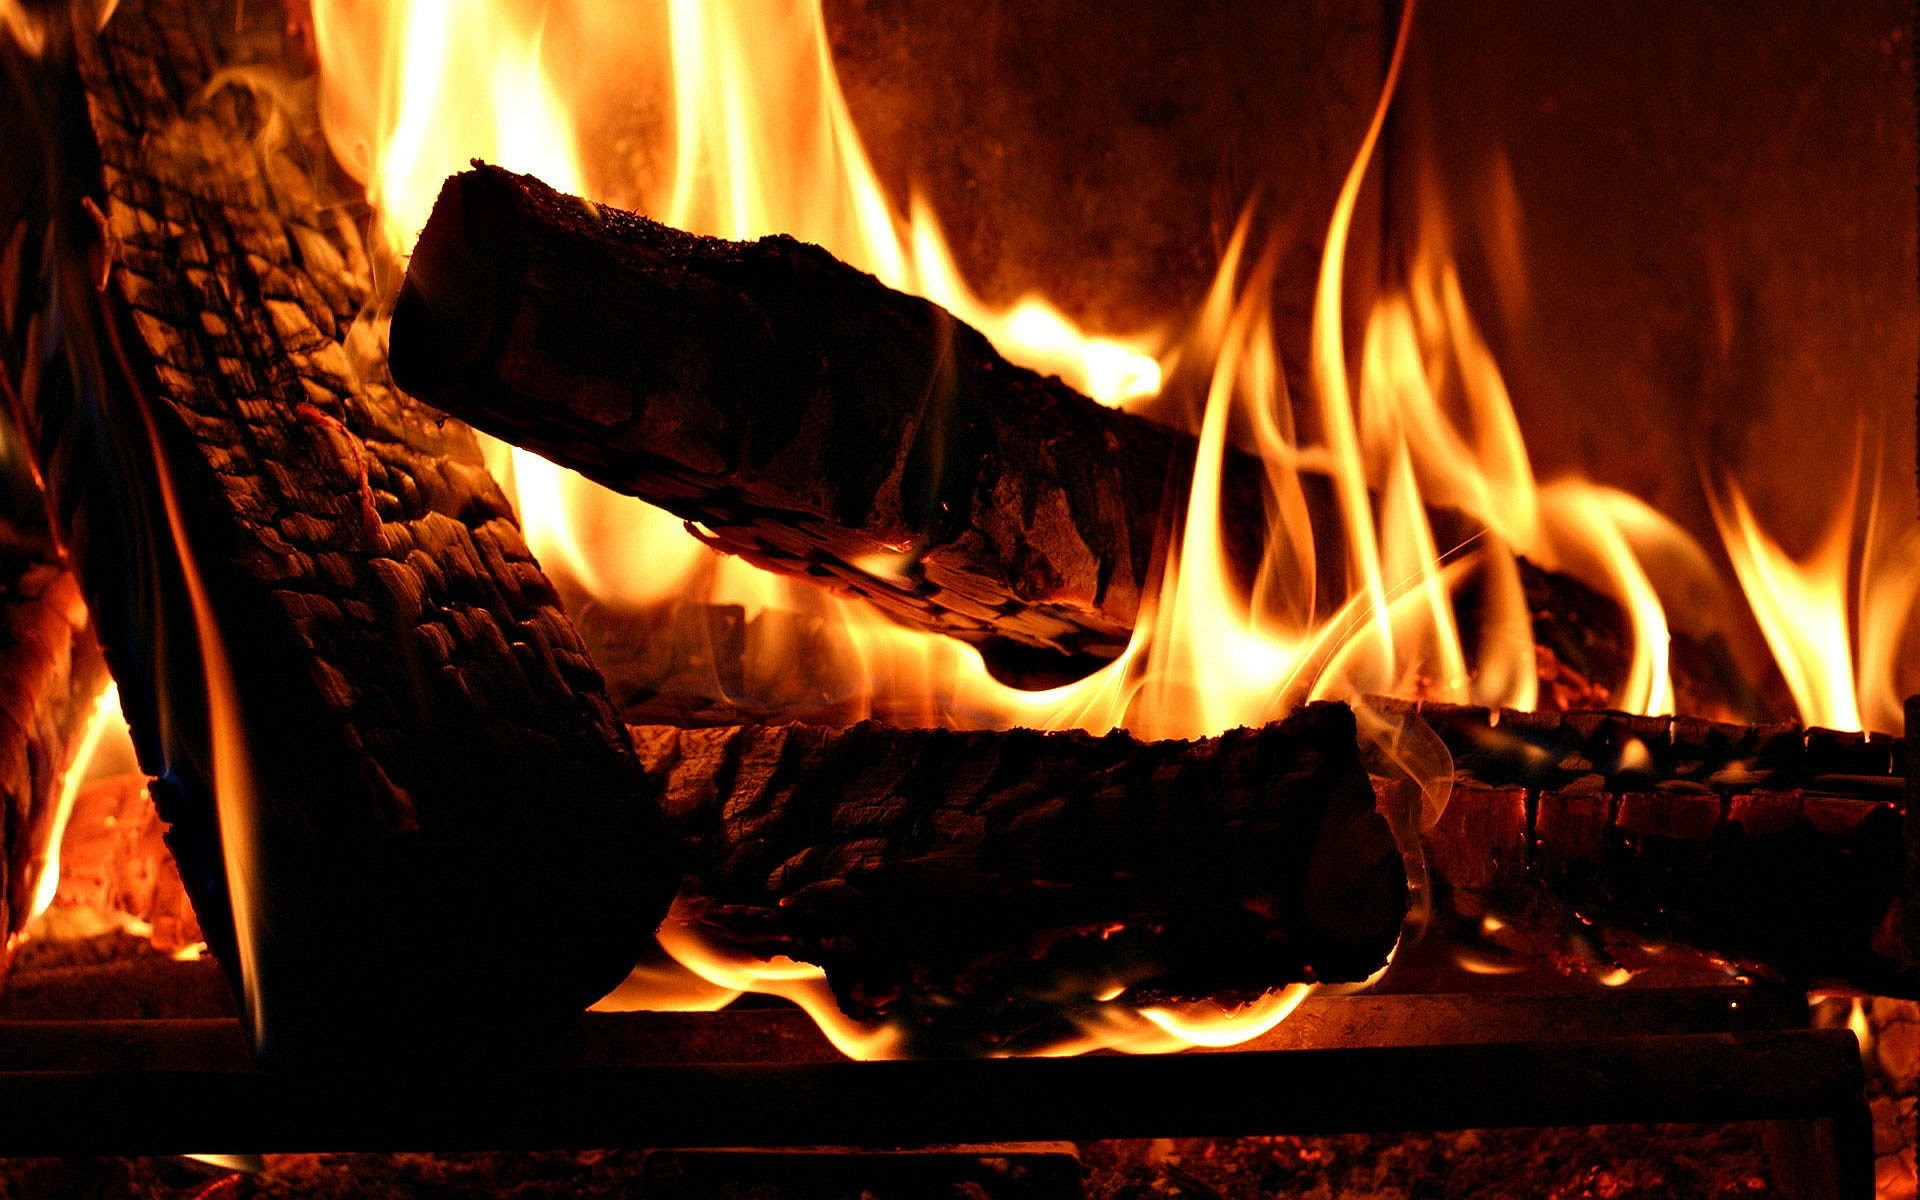 1920x1200 Flames In Fireplace Wallpapers